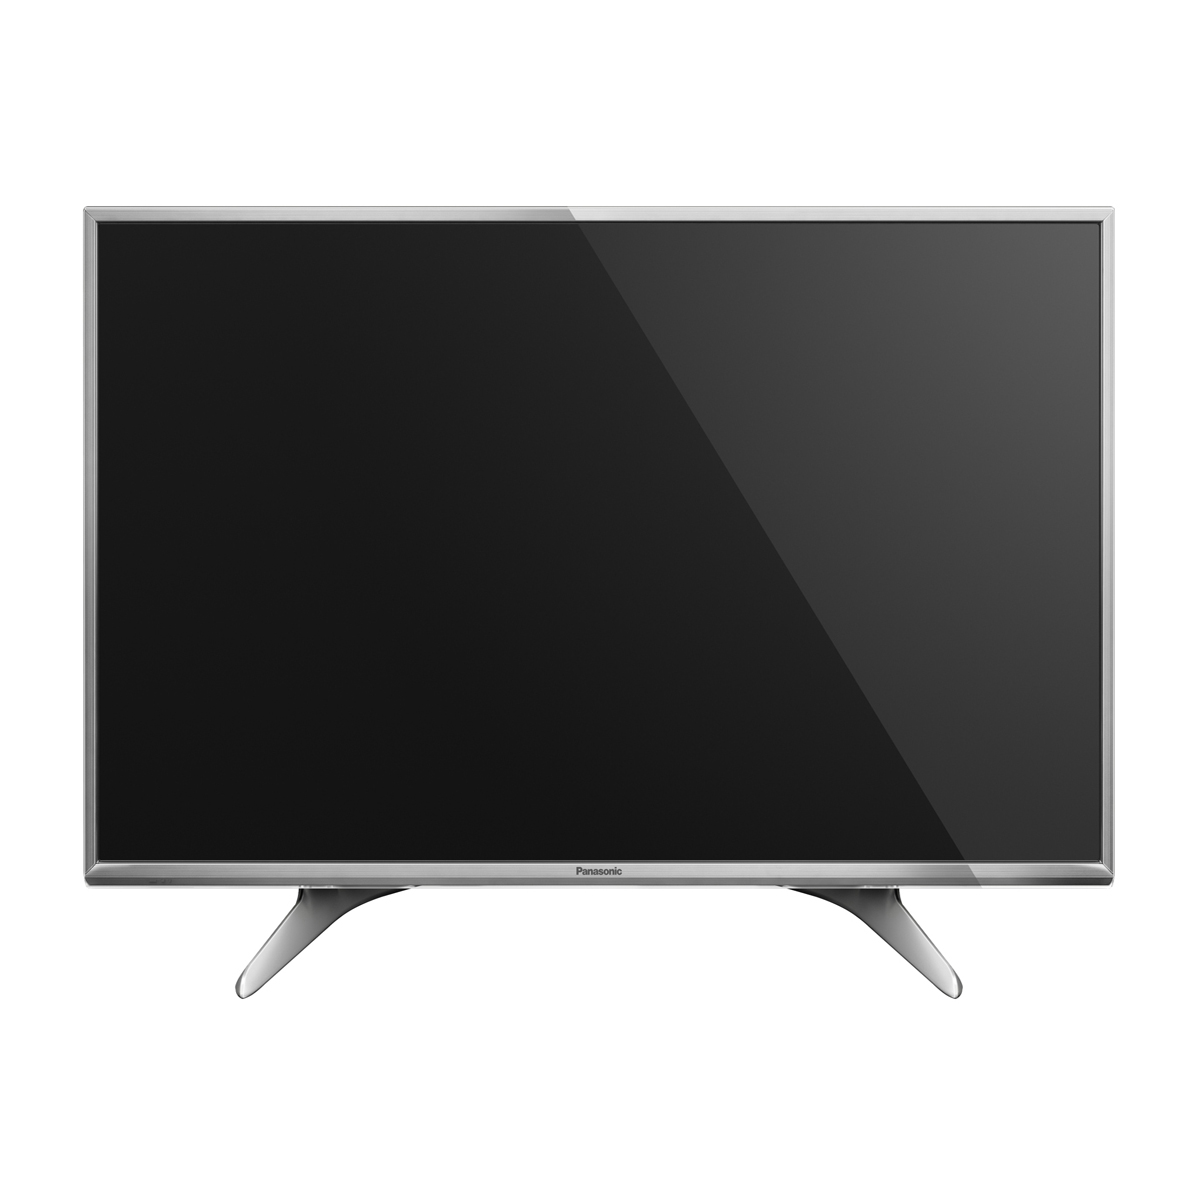 Panasonic TV TH-40DX600U